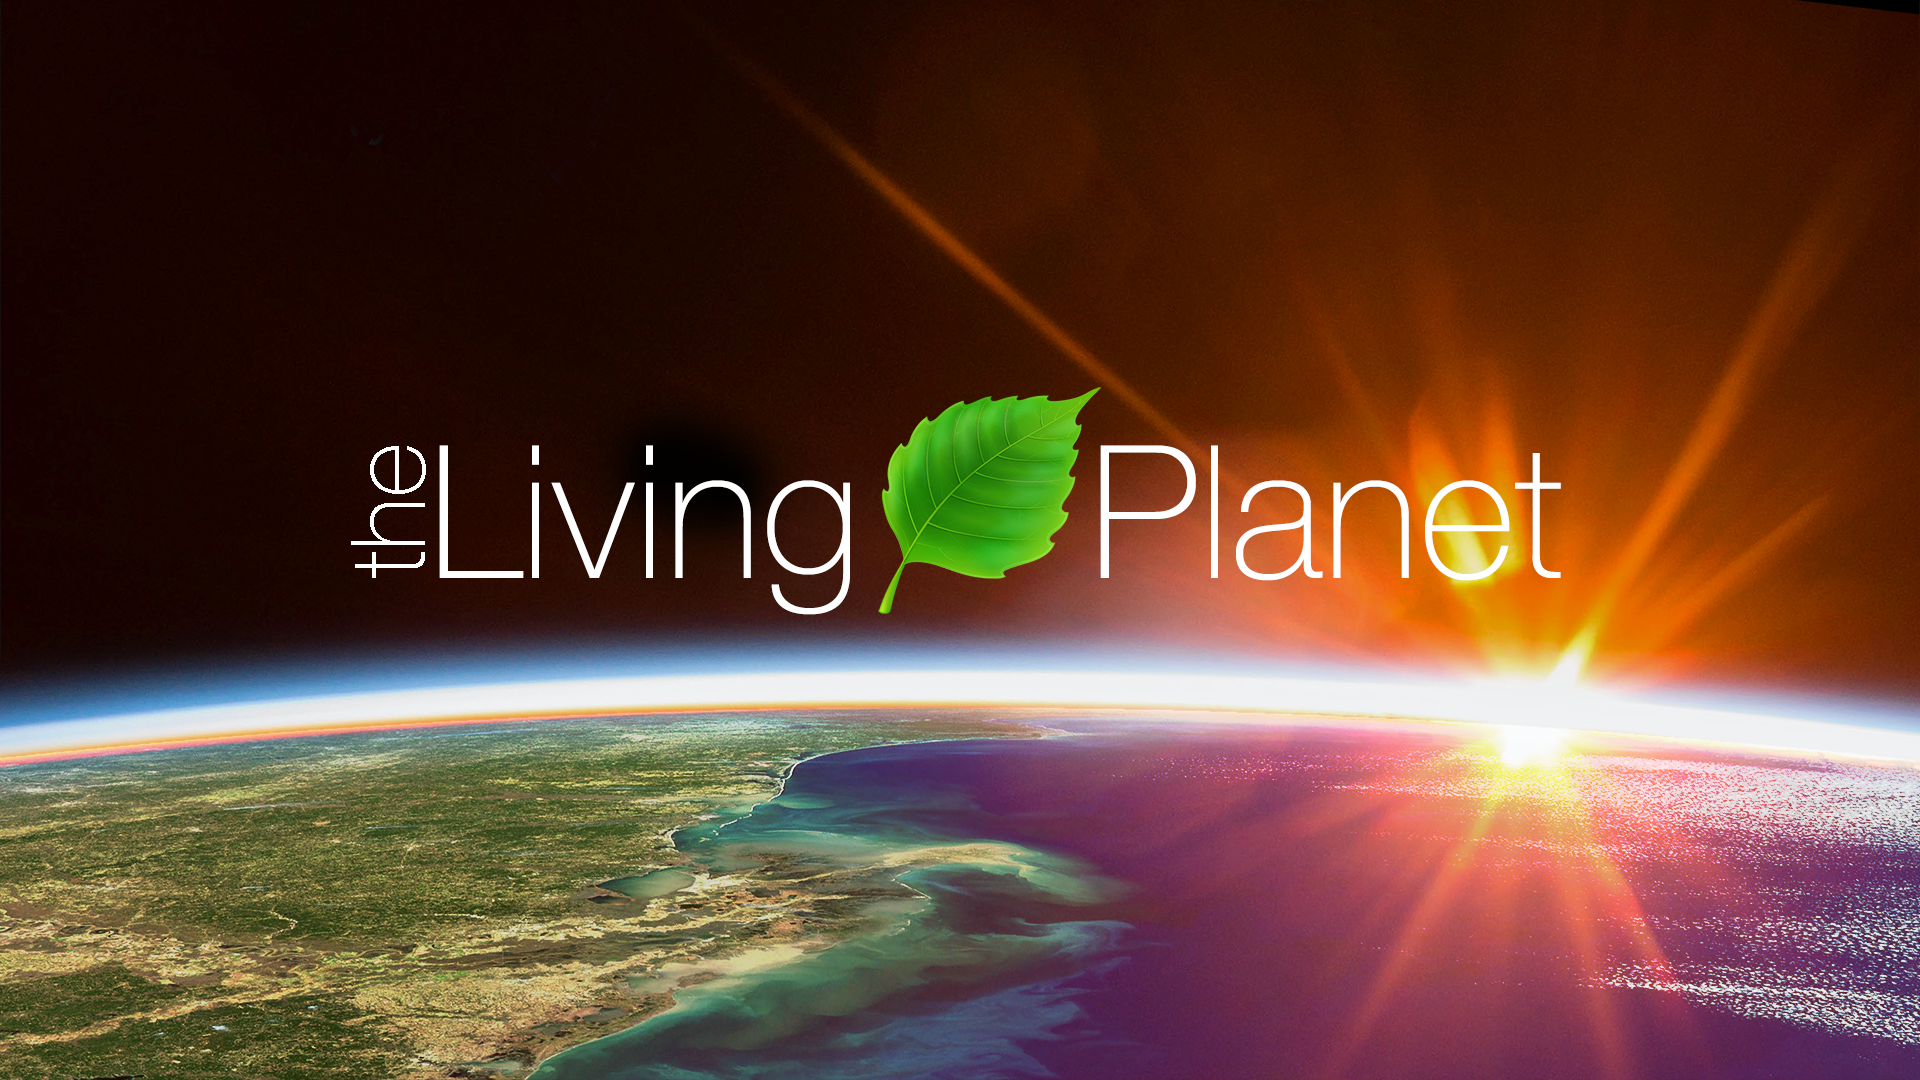 Our Living Planet Shapes The Search For Life Beyond Earth Nasa